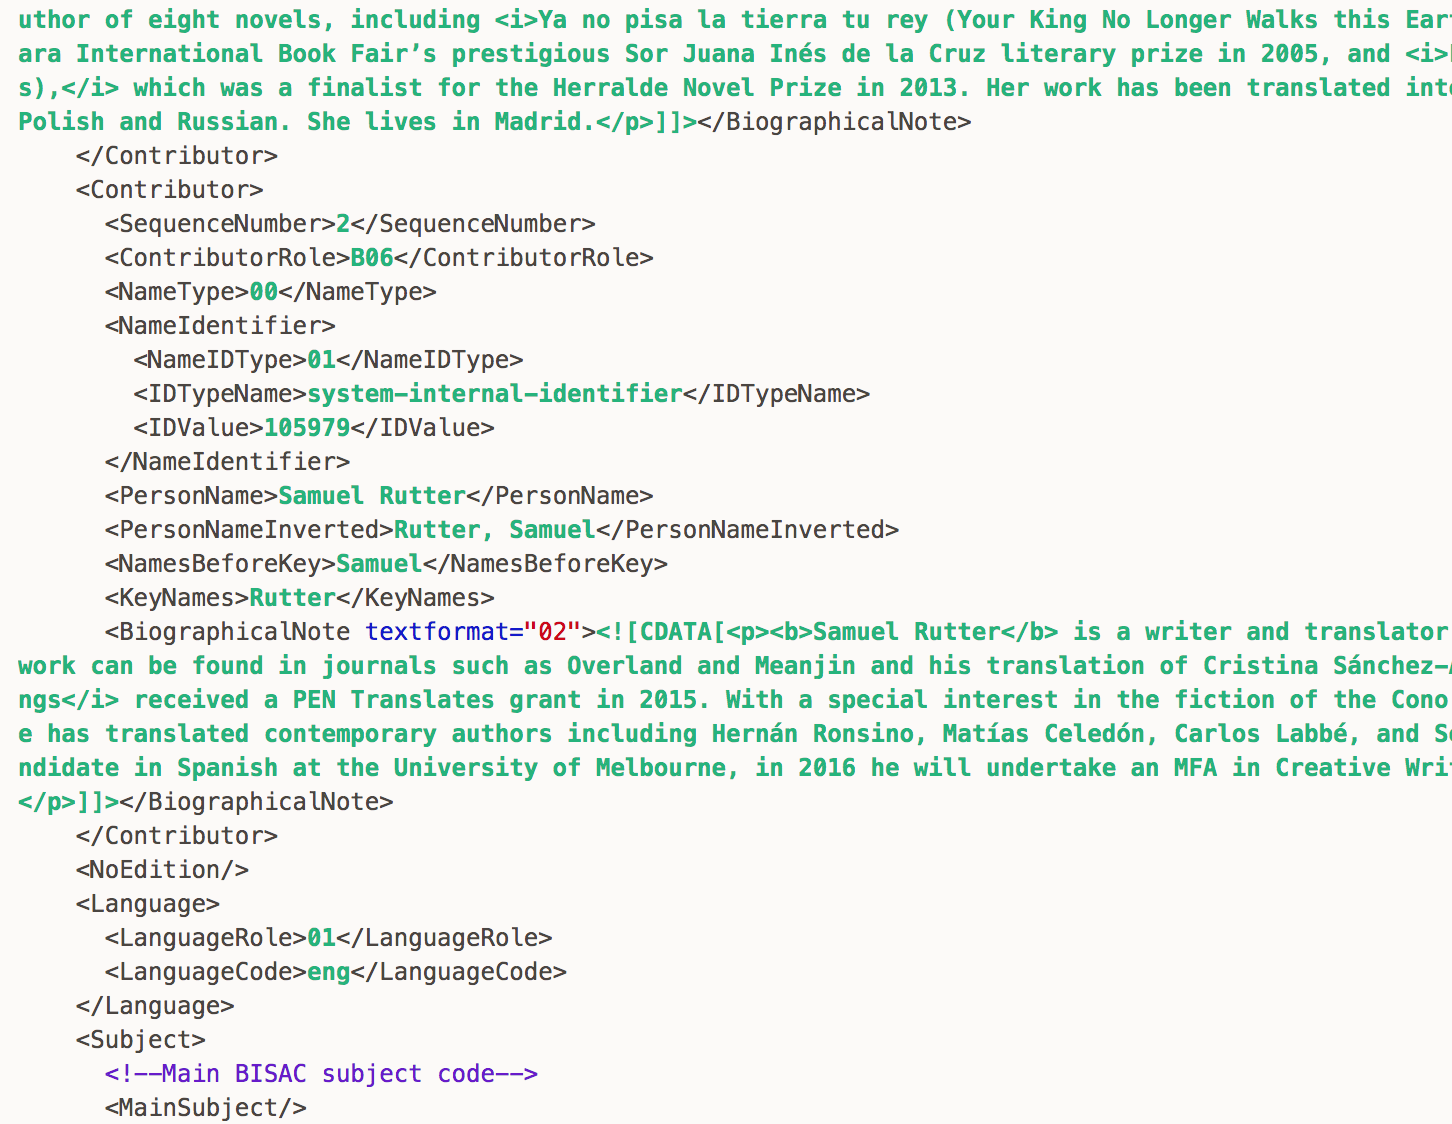 A fragment of <abbr title='ONline Information eXchange, an XML international standard specific to the book trade, first launched in 2000, for representing and communicating book industry product information in electronic form'>ONIX</abbr> XML code